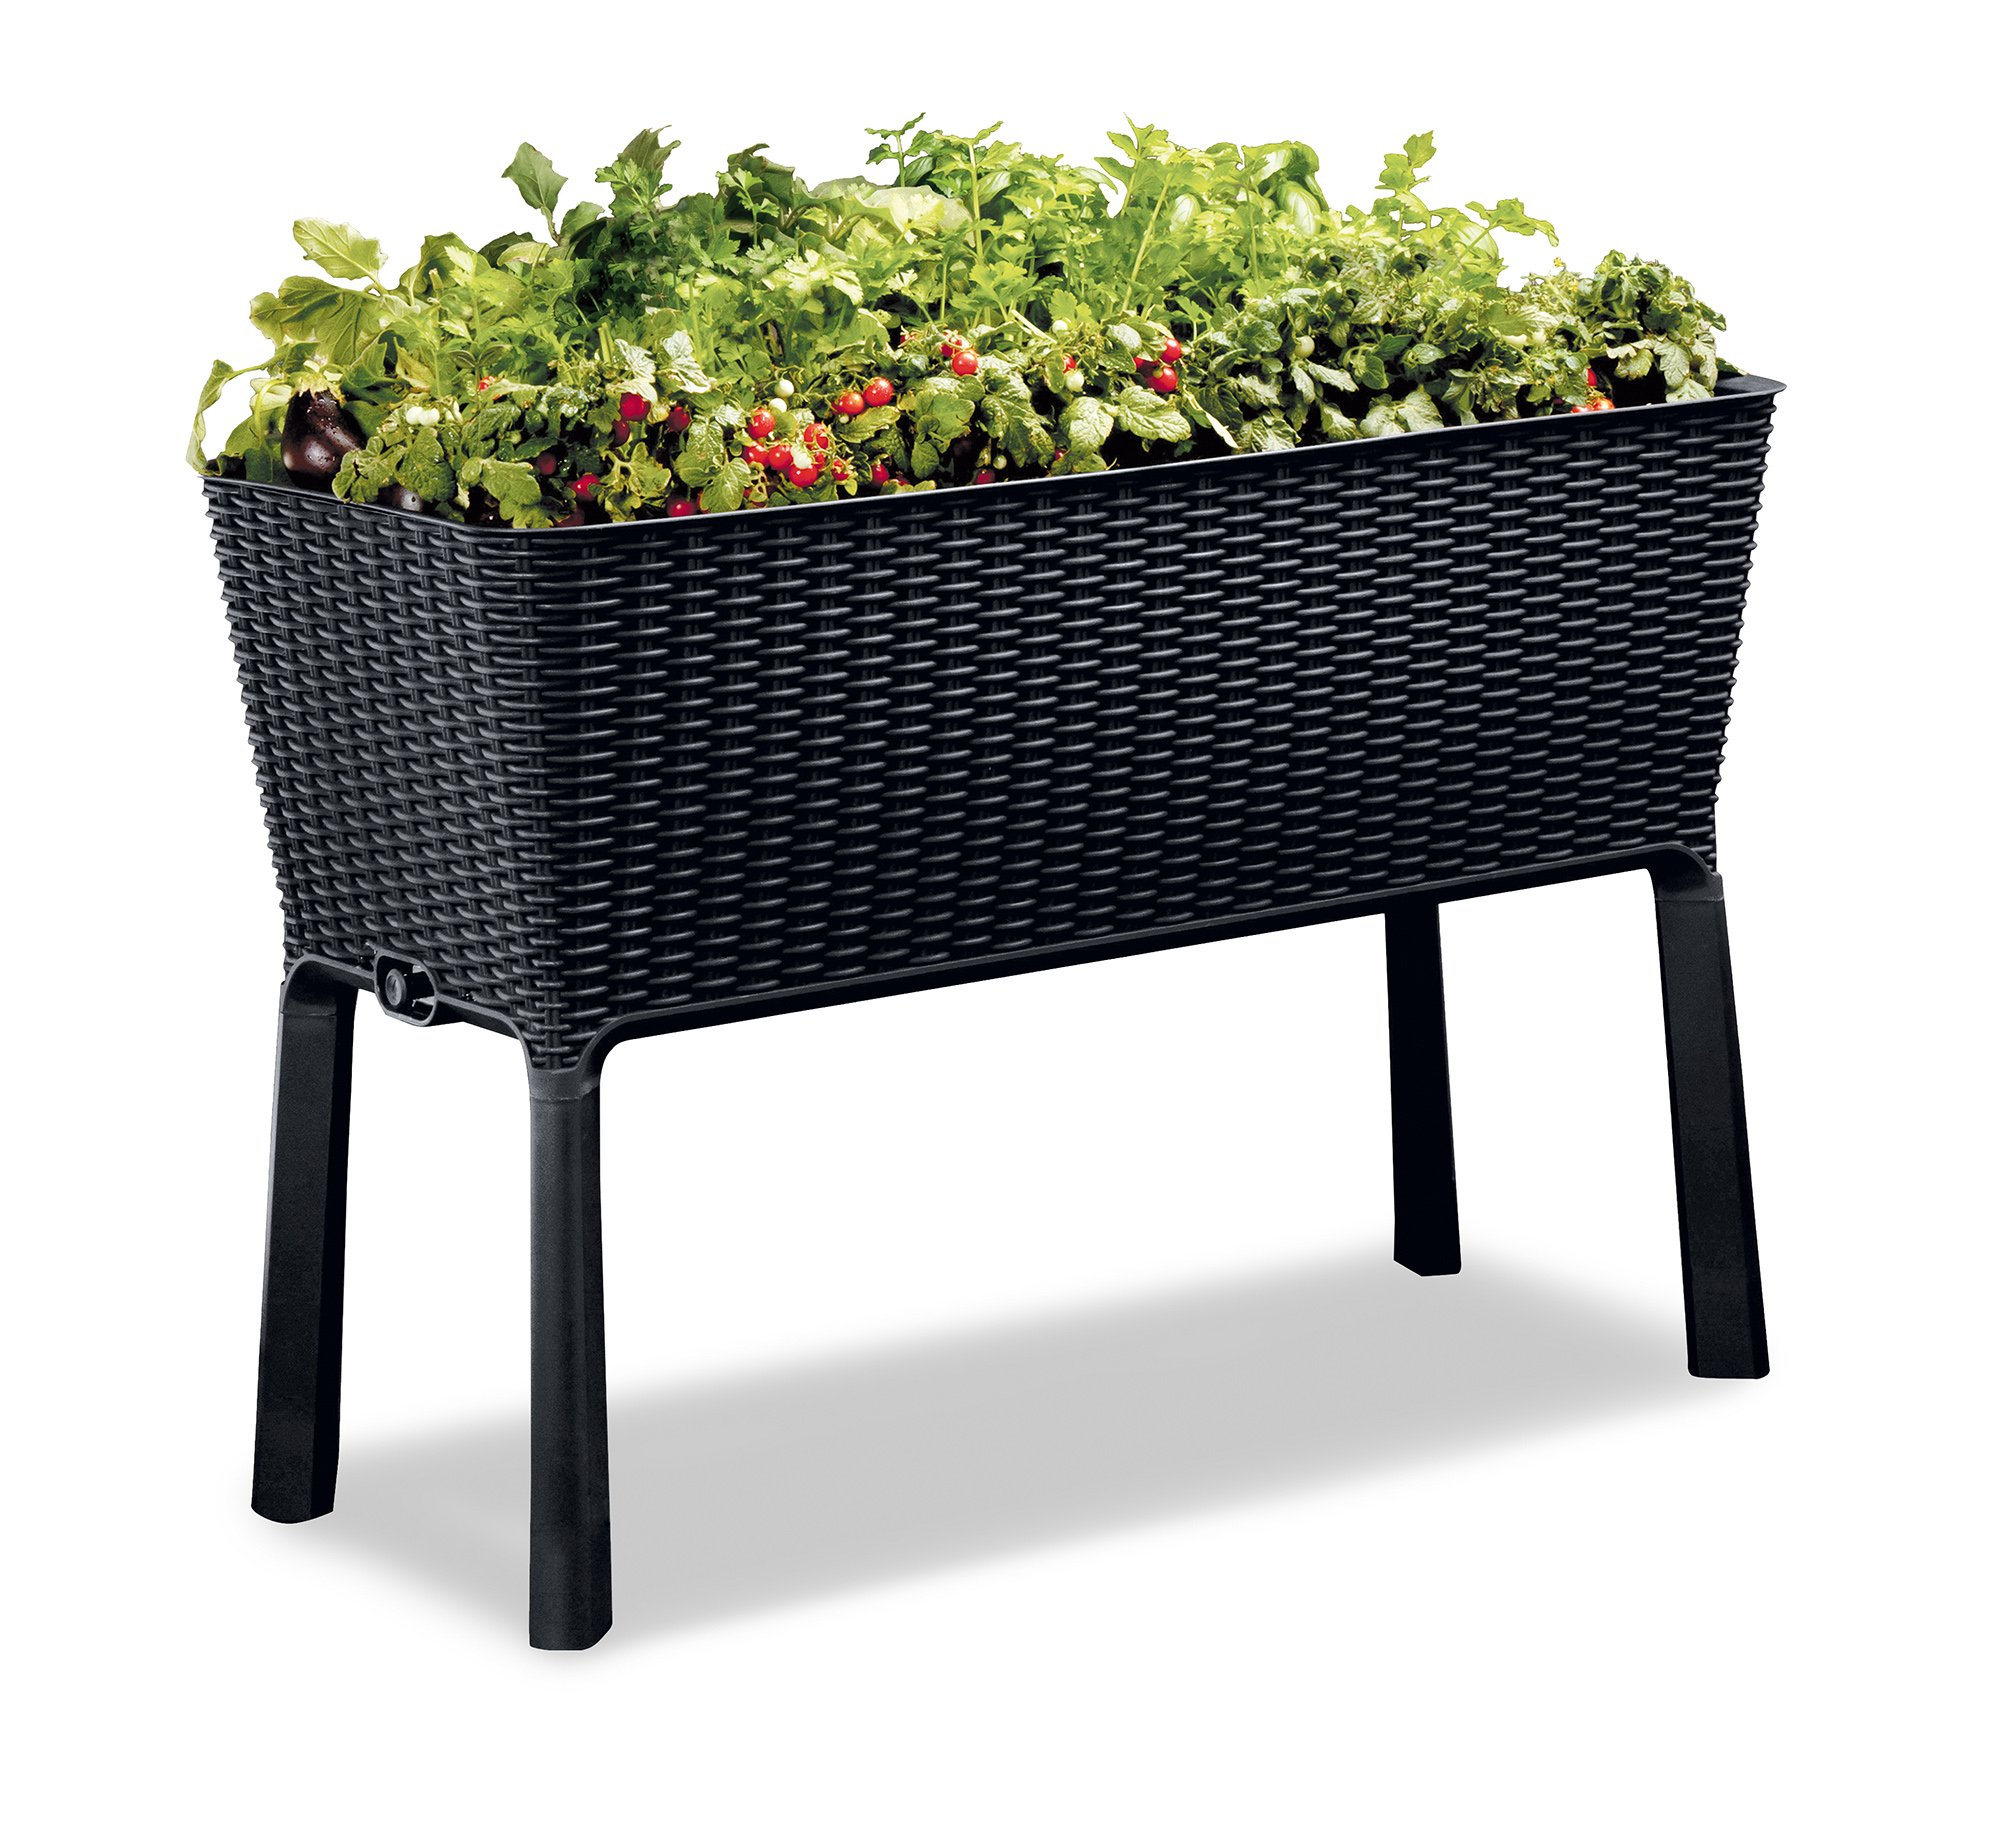 Keter Elevated Garden Bed 1 Dimensions: 44. 9 in. W x 19. 4 in. D x 29. 8 in. H Easy to read water gauge indicates when plants need additional moisture Drainage system that can be opened or closed for full control of watering